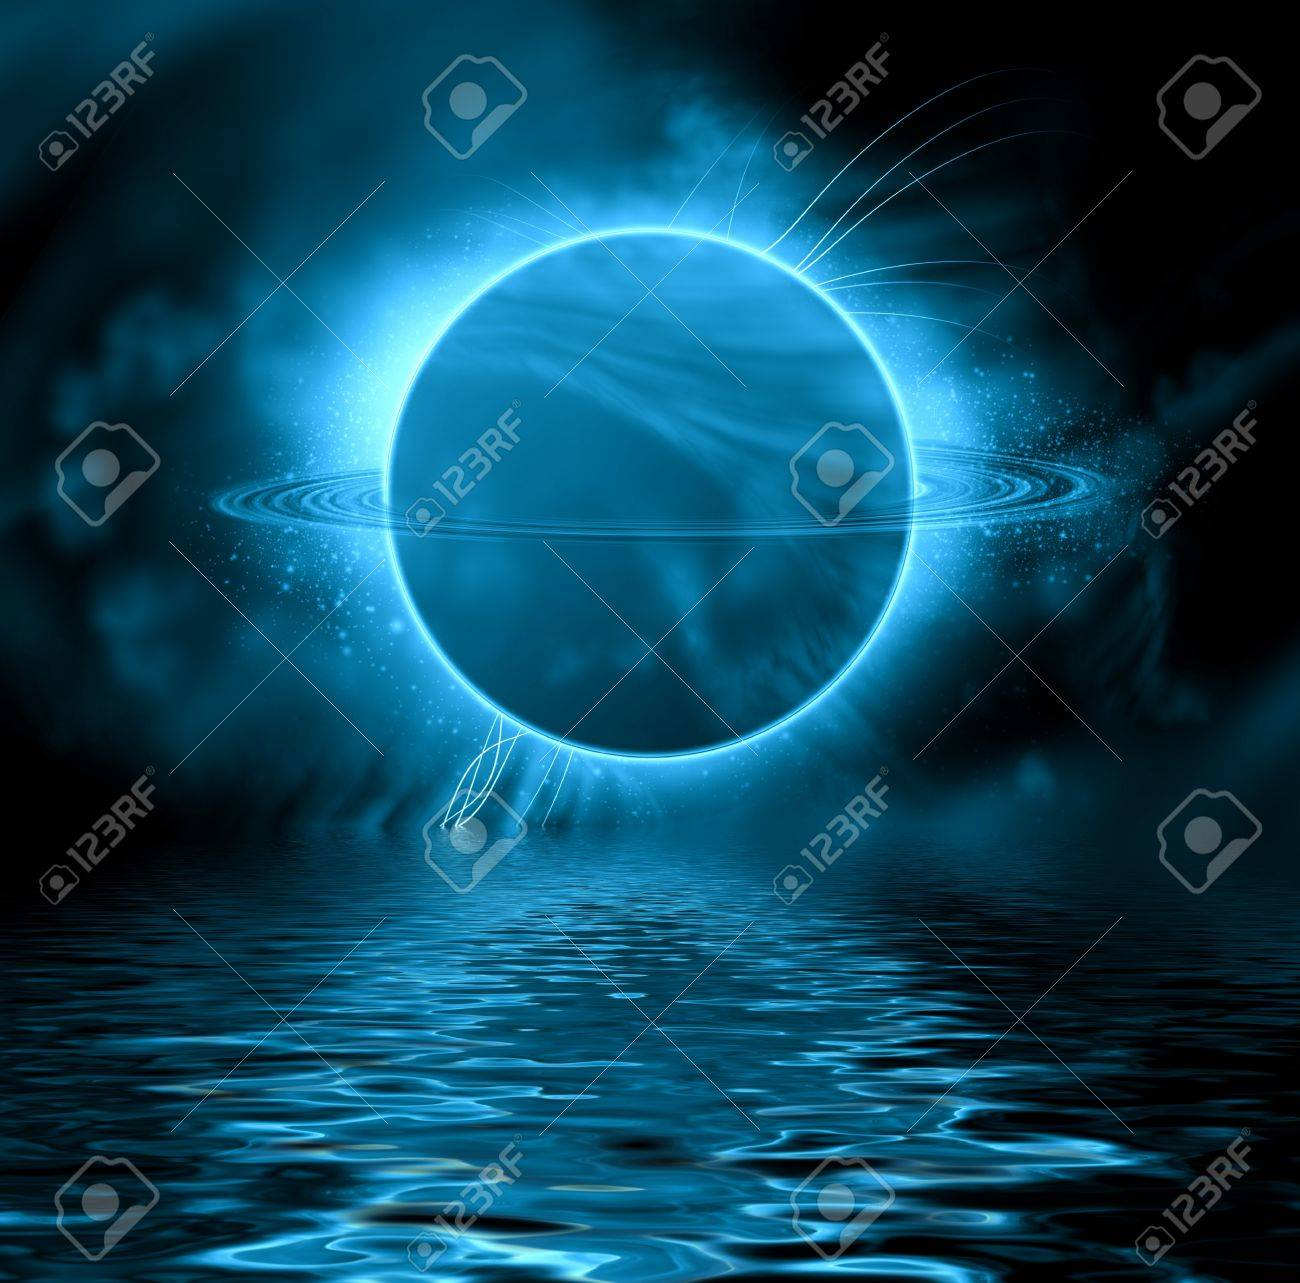 Fantasy planet reflected in water surface  Space background Stock Photo - 20384079